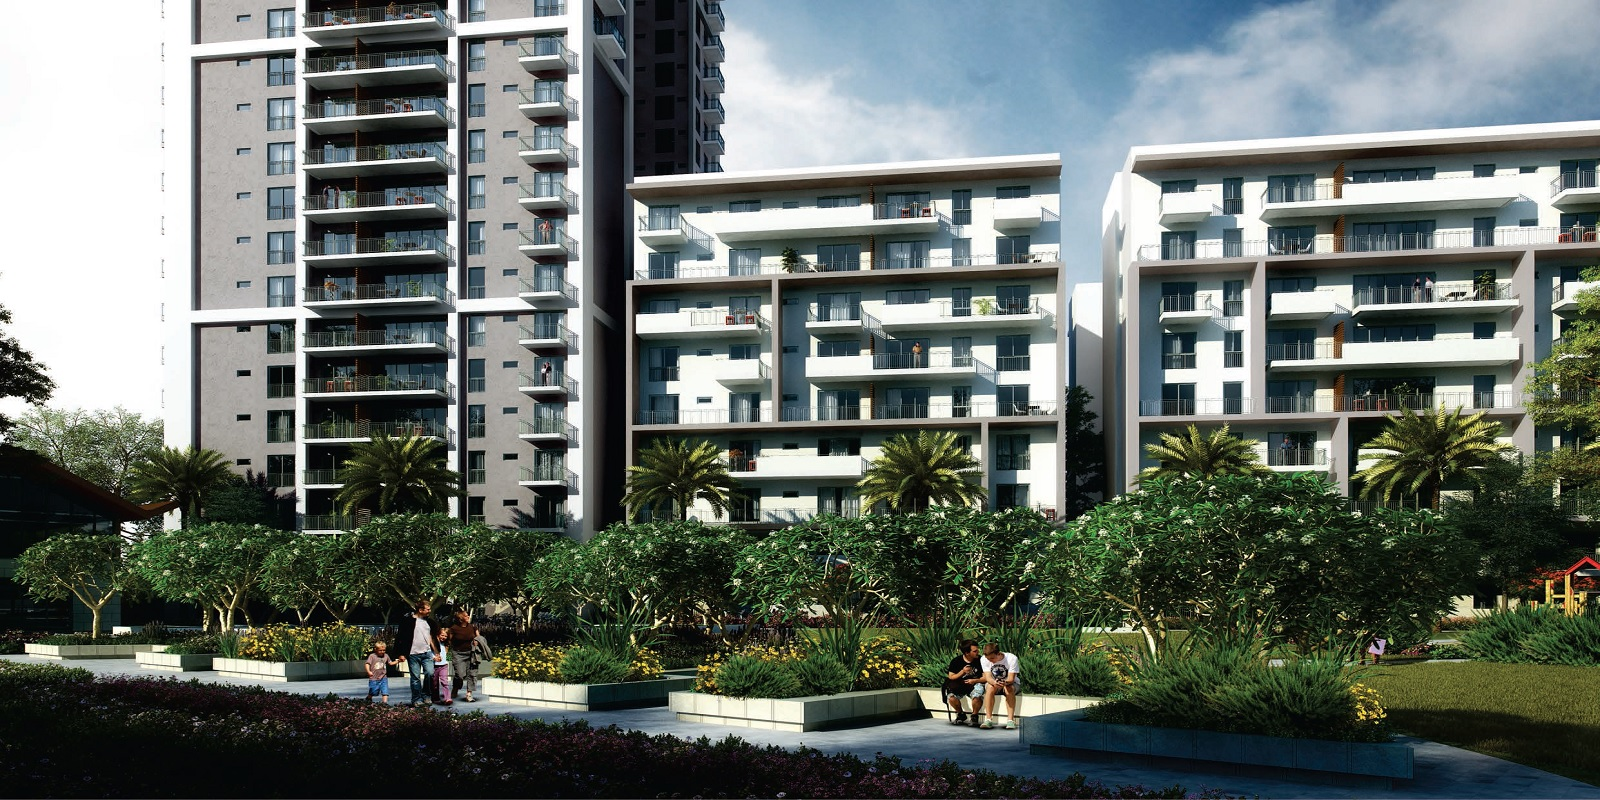 vatika turning point phase 2 amenities features8